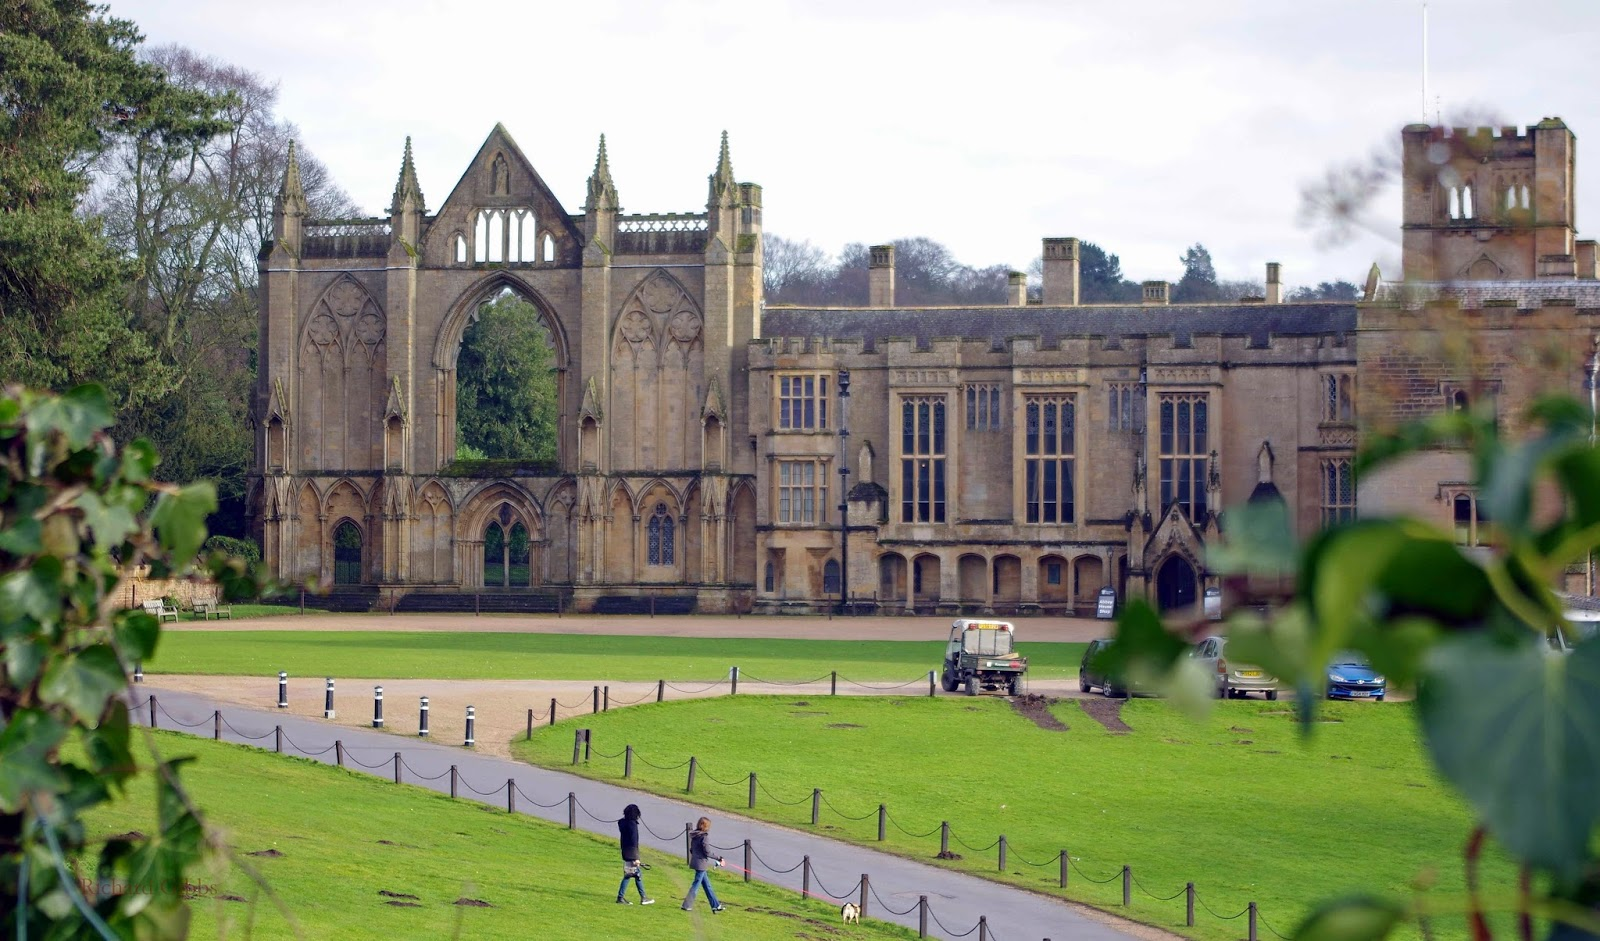 lord byron research paper essay example 58 lord byron essay examples from best writing company eliteessaywriterscom get more persuasive, argumentative lord byron essay samples and other research papers after sing up.